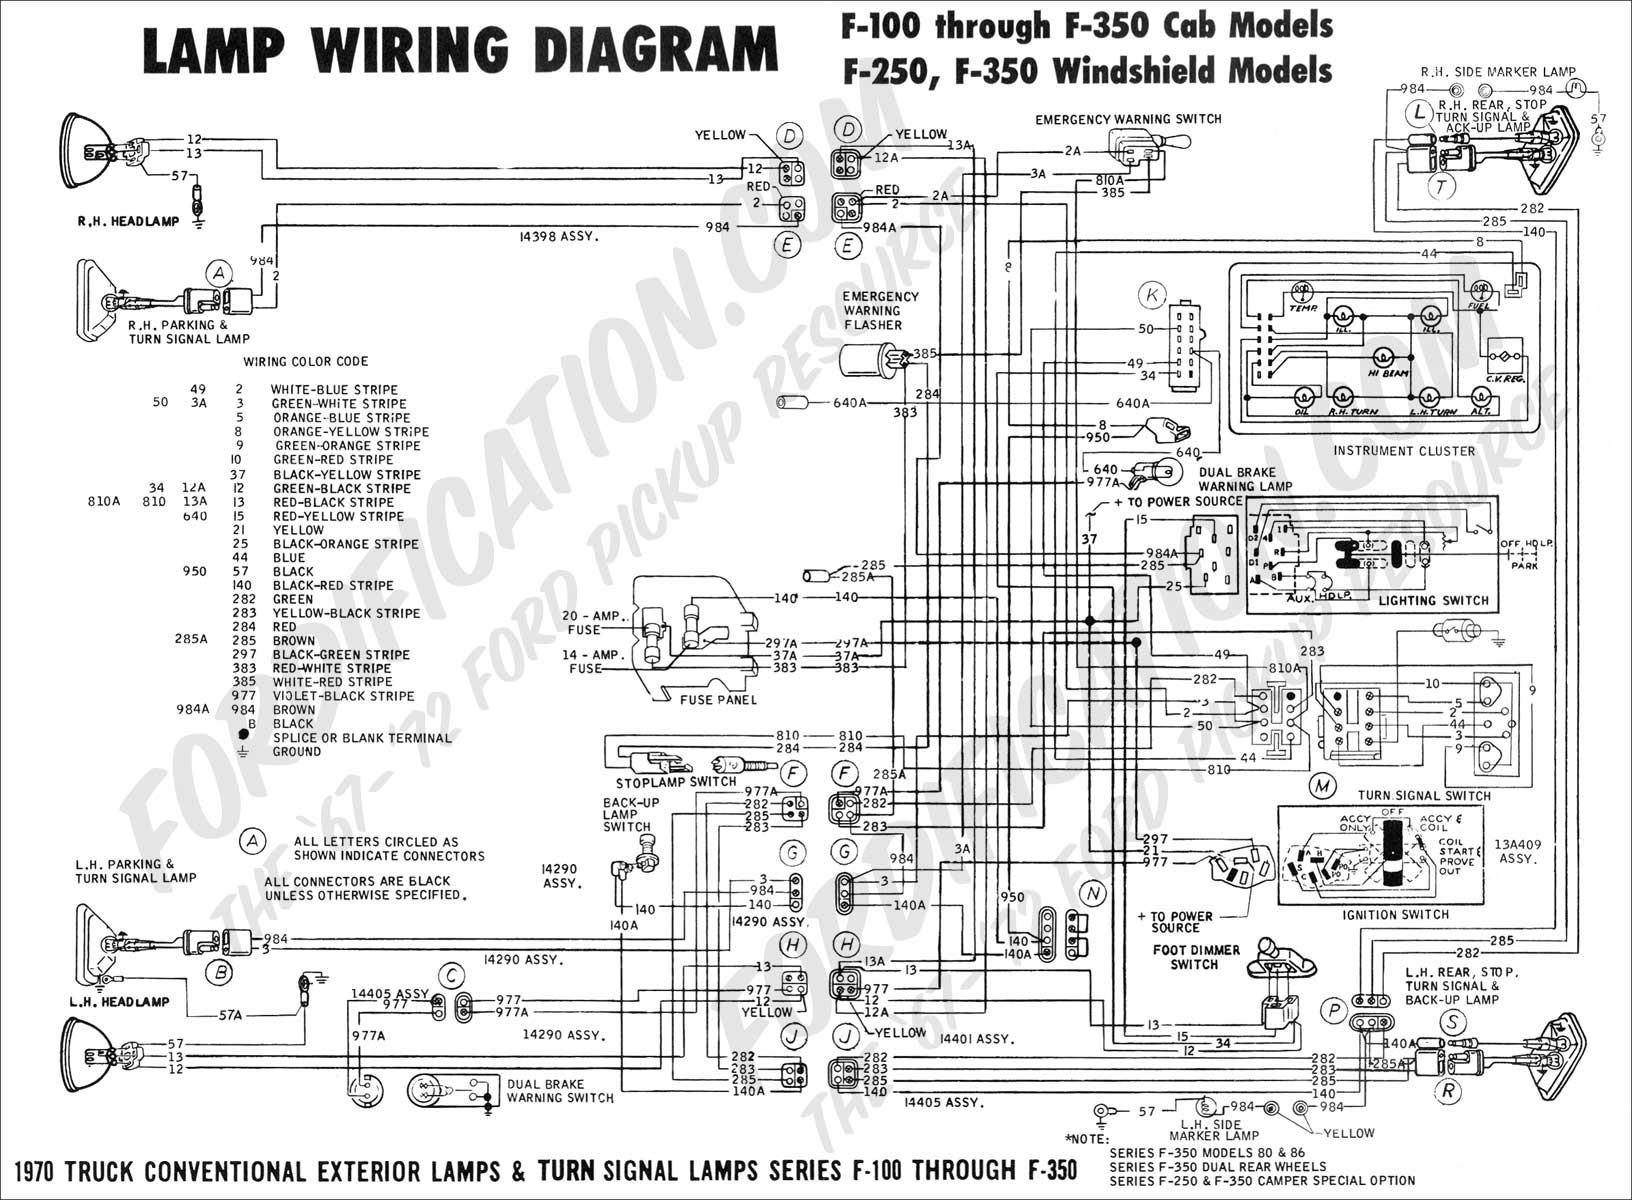 Ford F 450 Trailer Wiring Diagrams Light | Wiring Diagram - Ford F450 Trailer Wiring Diagram